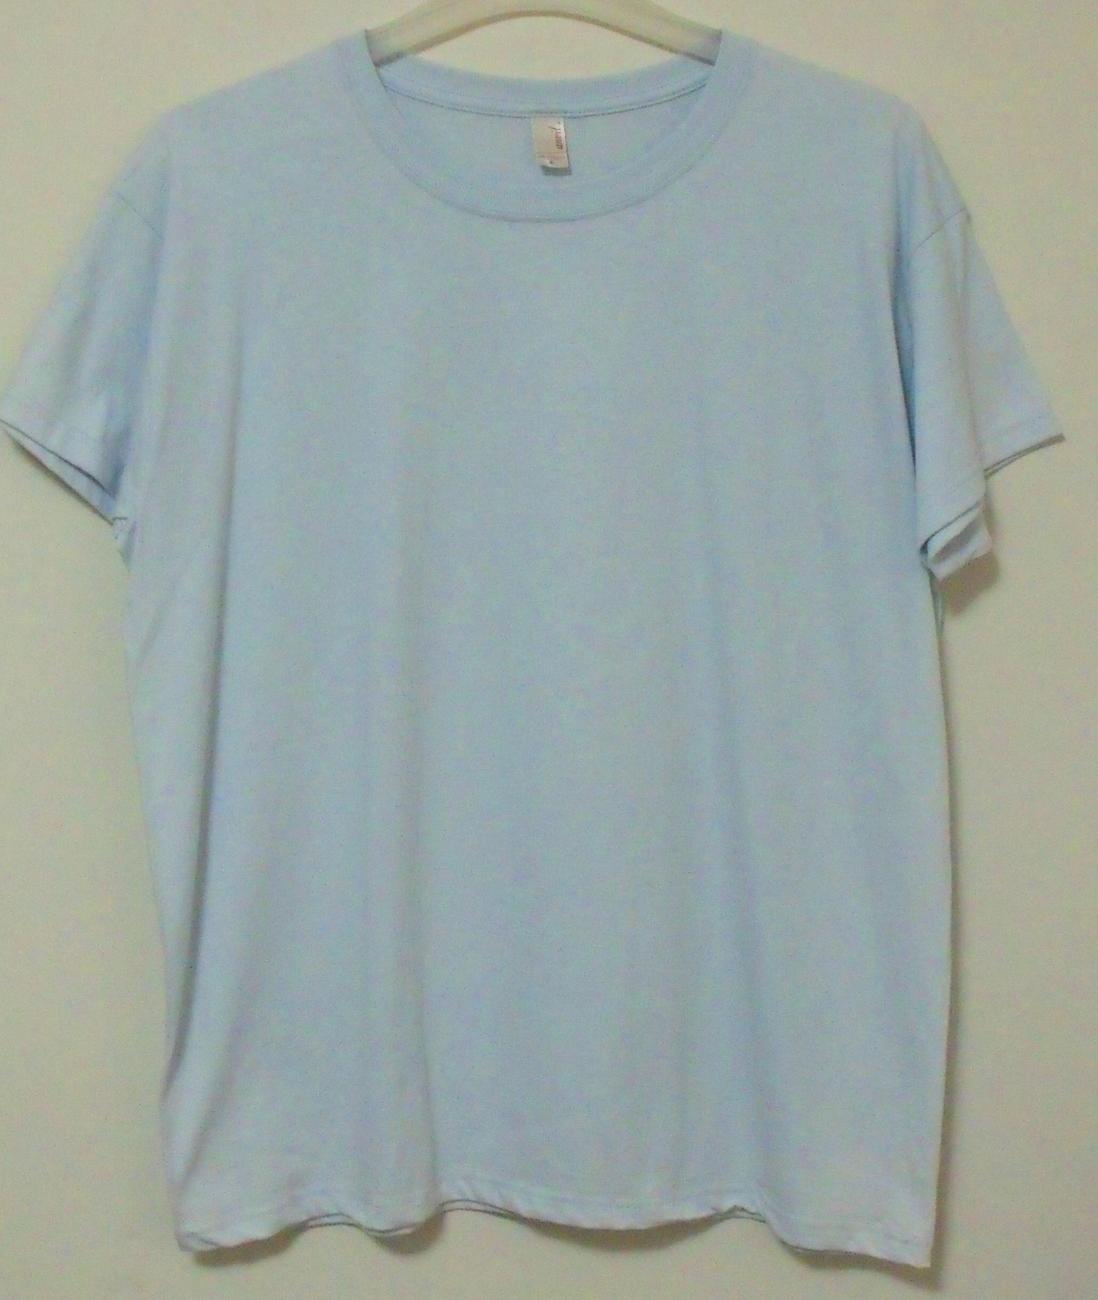 Primary image for Womens Anvil NWOT Blue Short Sleeve T Shirt Size XL